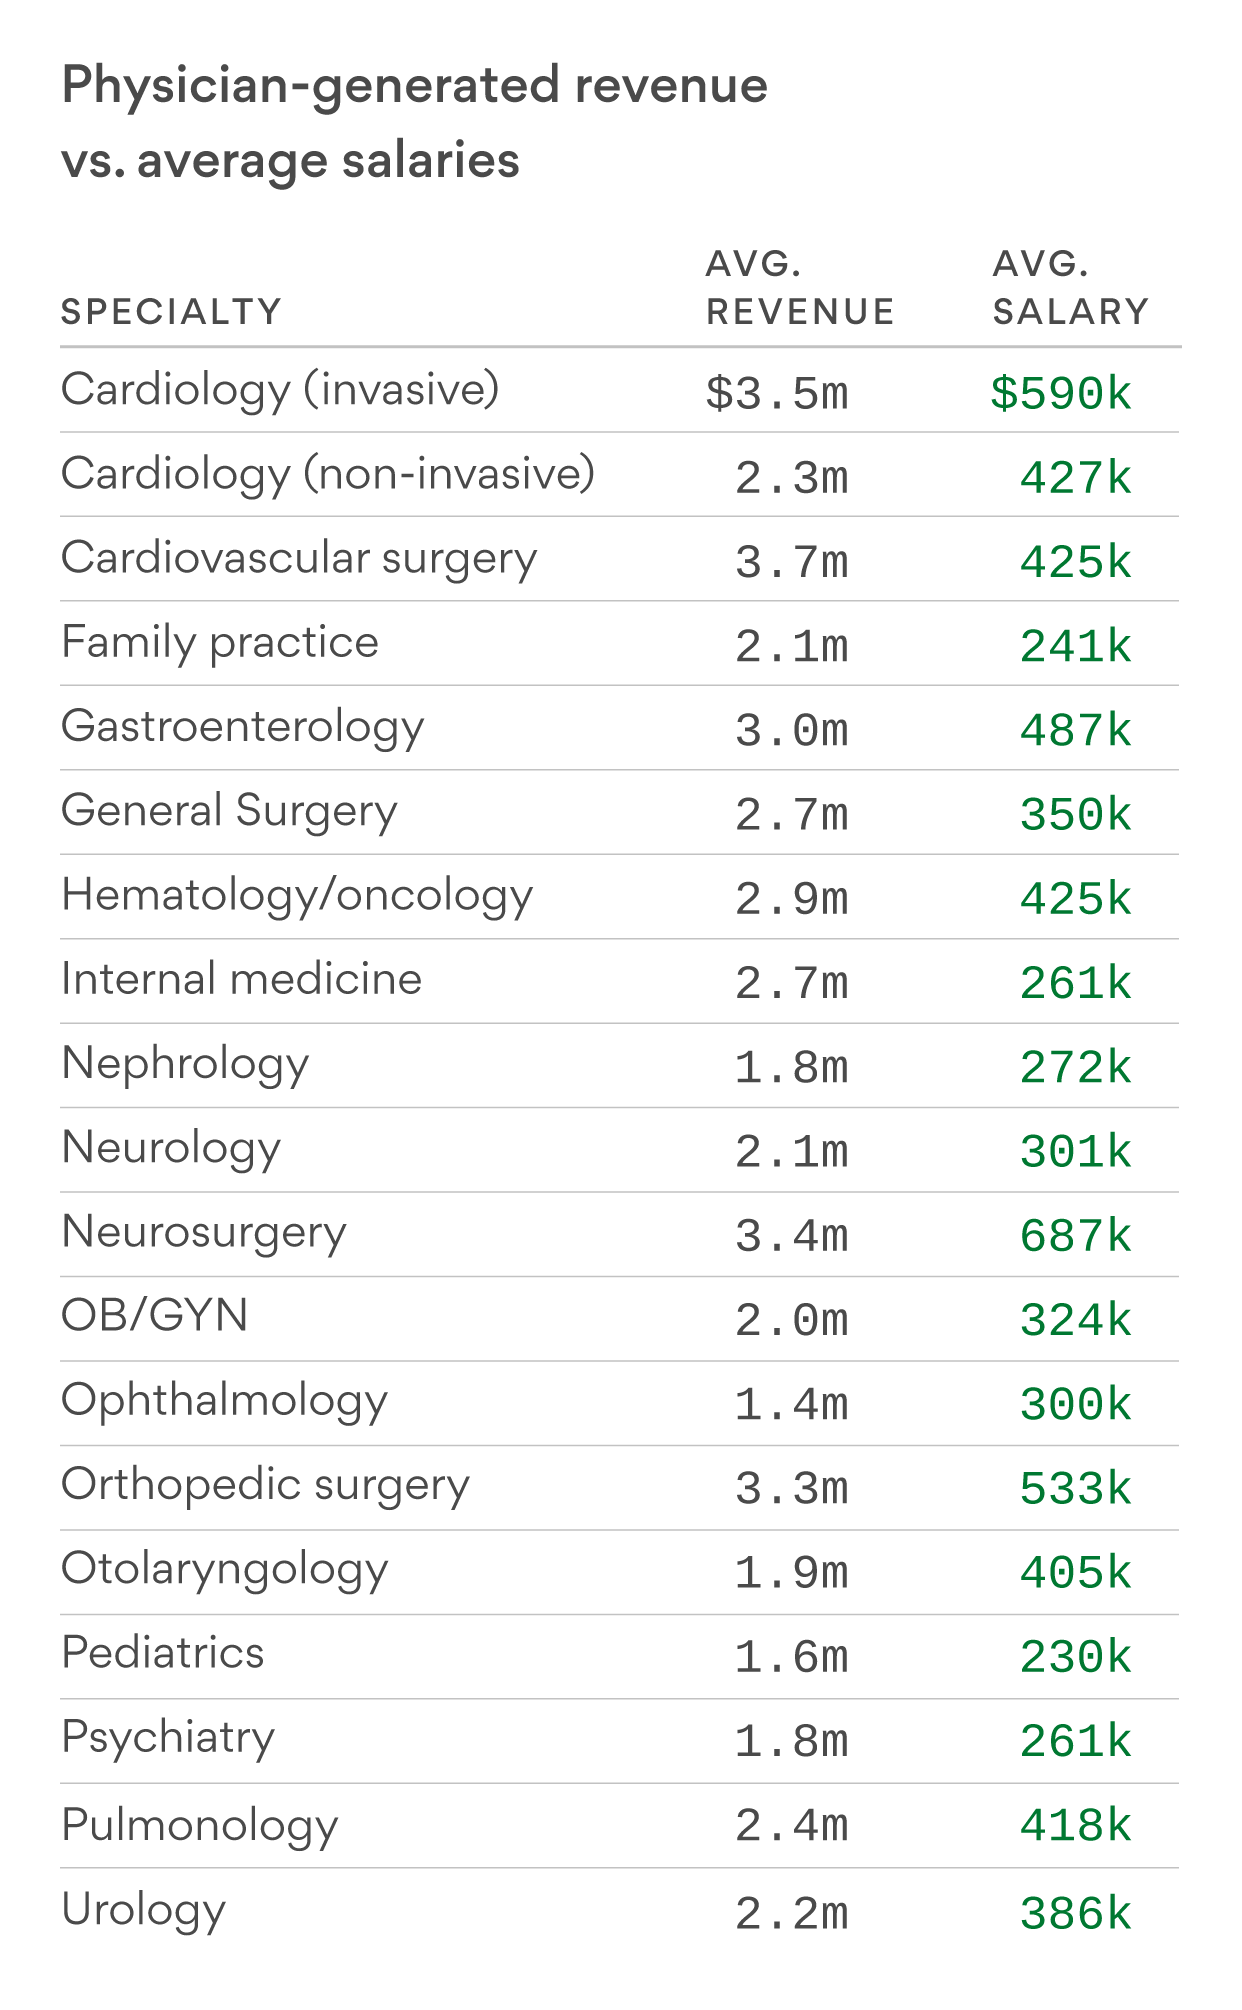 Doctors bring in a lot of money for hospitals